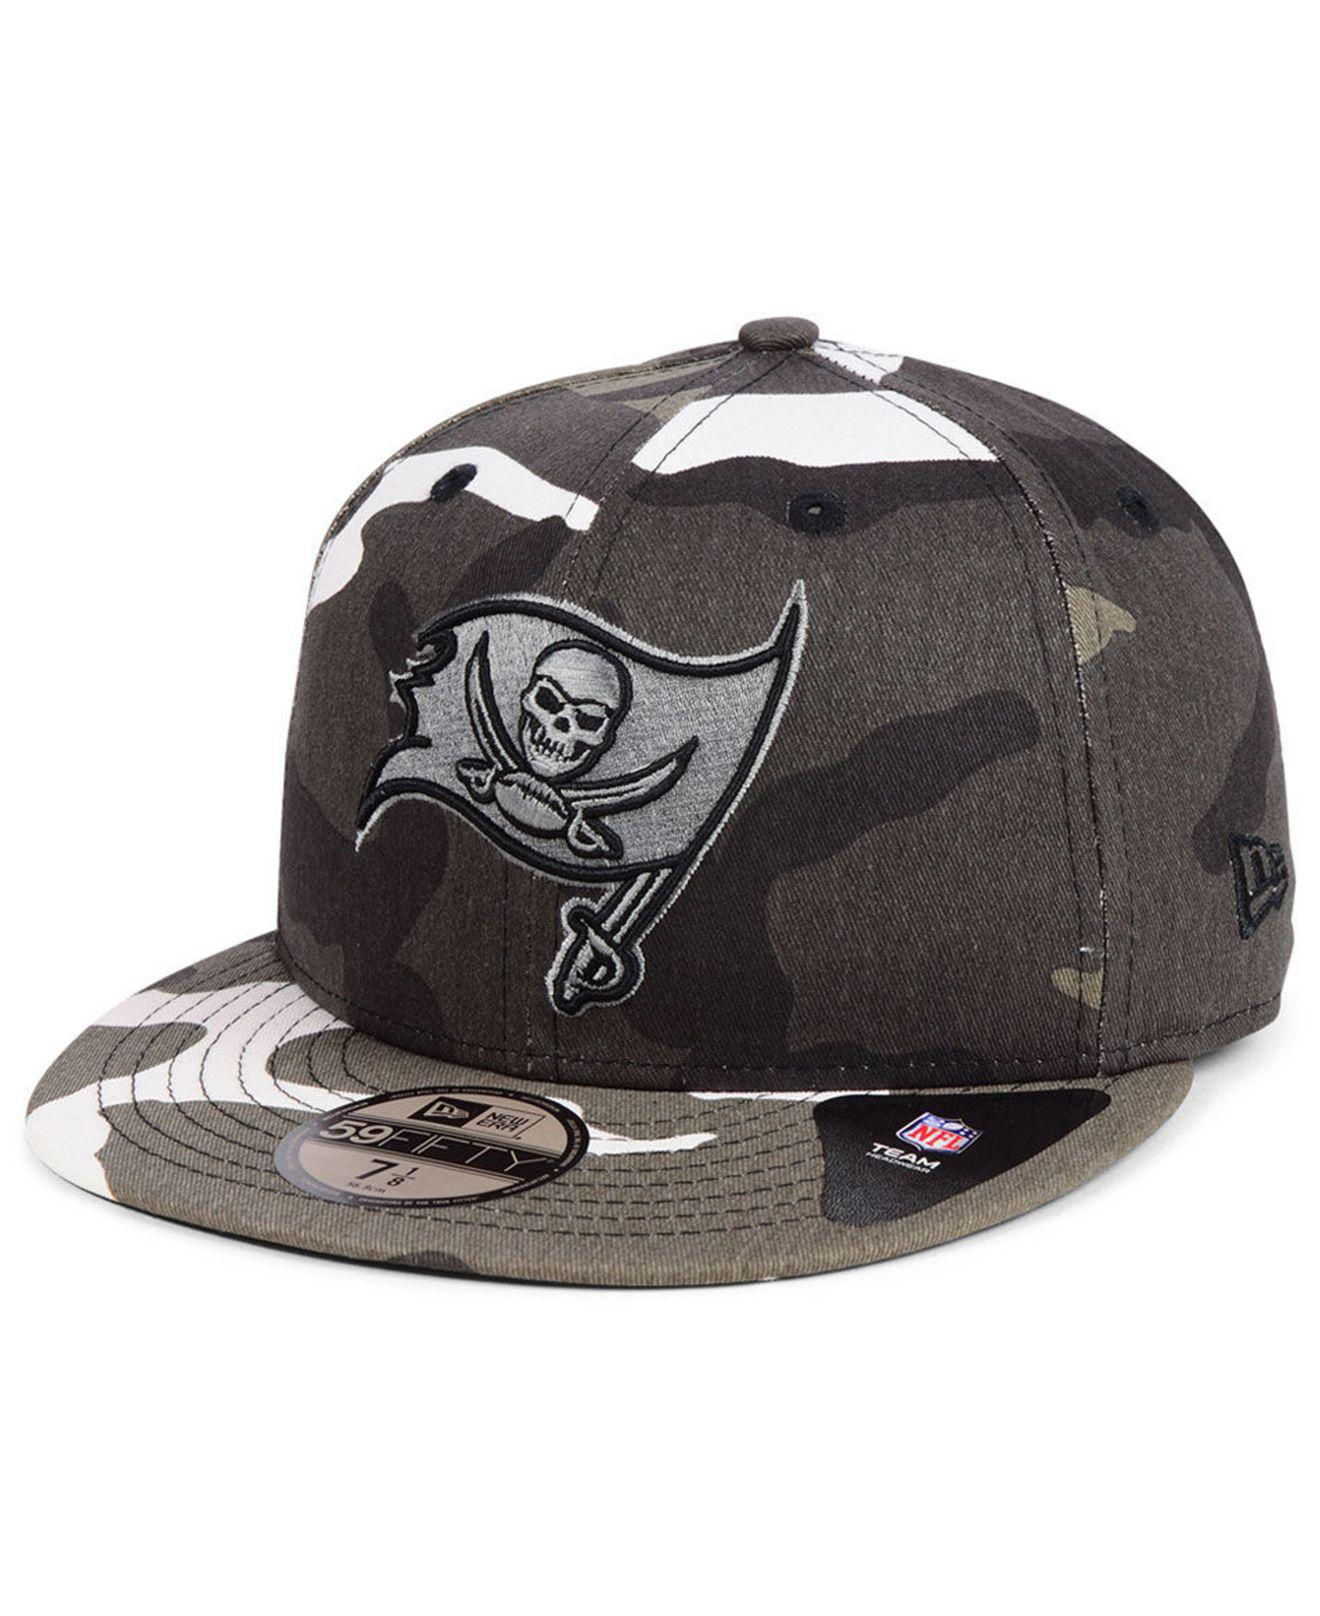 Lyst - Ktz Tampa Bay Buccaneers Urban Prism Pack 59fifty-fitted Cap ... 8d4969053d35